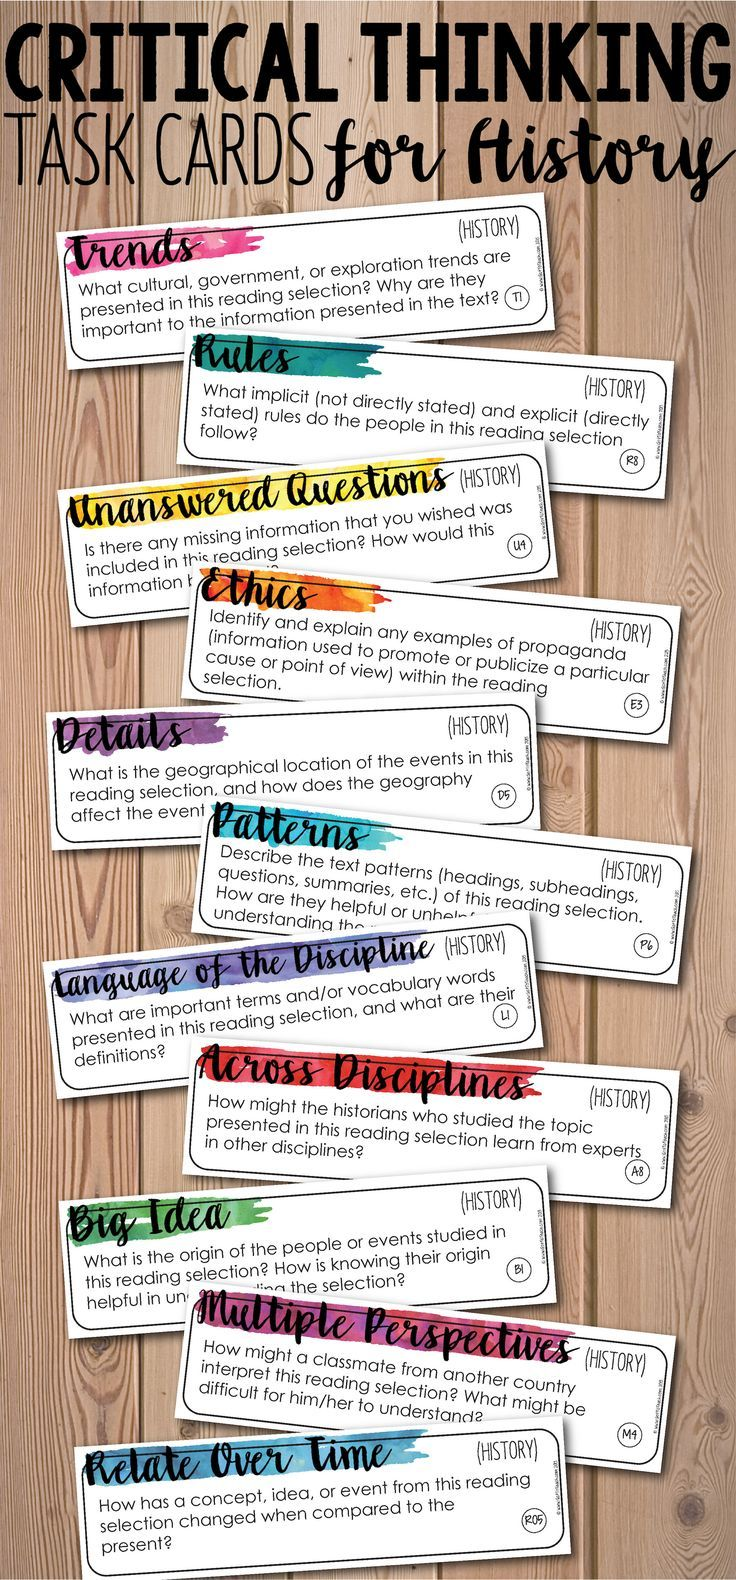 How does the study of history help to develop critical thinking skills